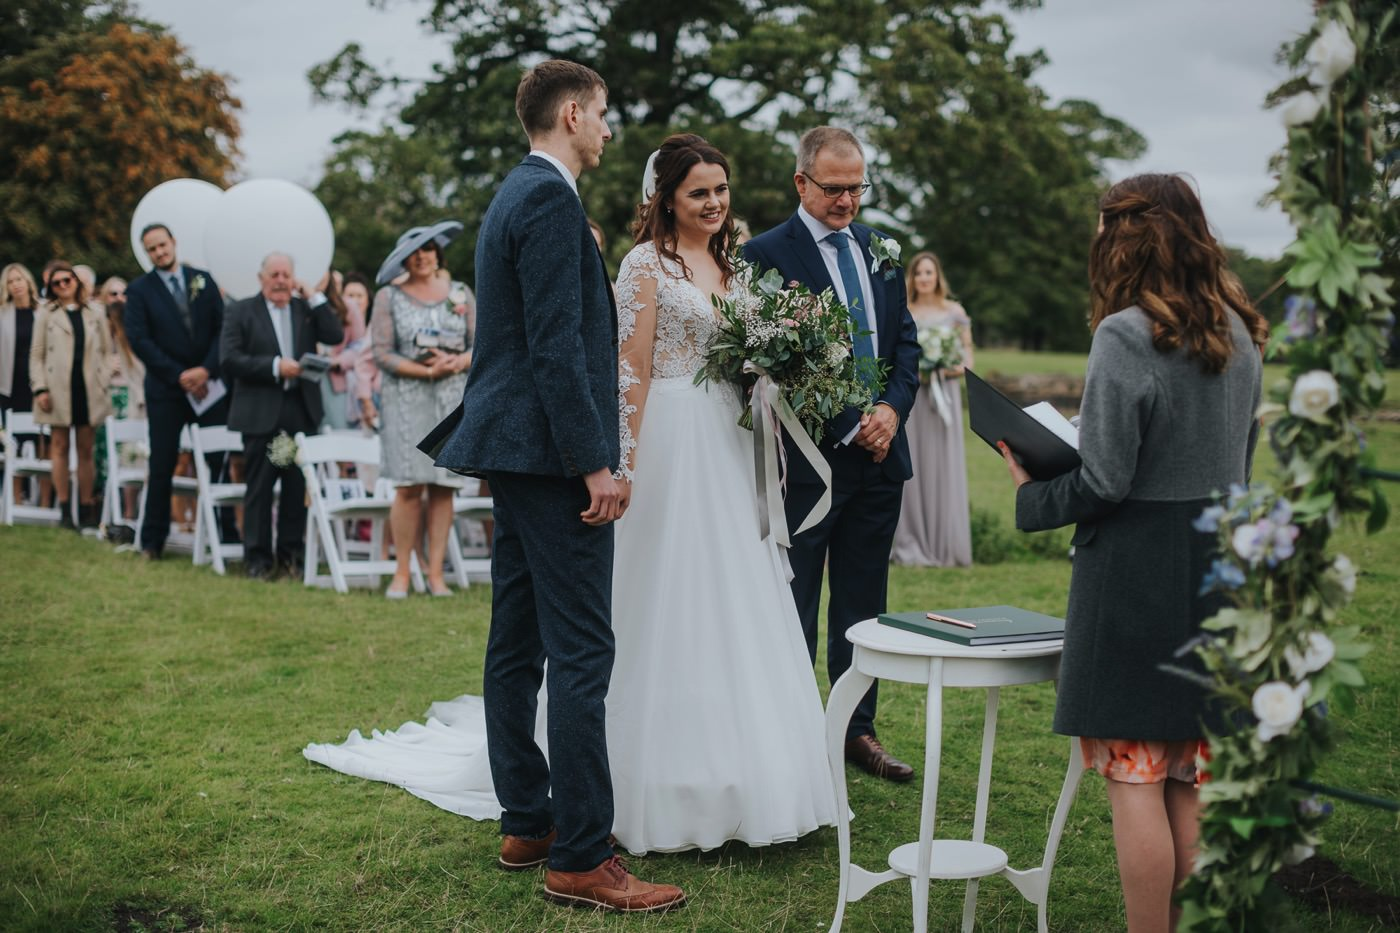 Steve & Tiffany | Bradgate Park wedding 56